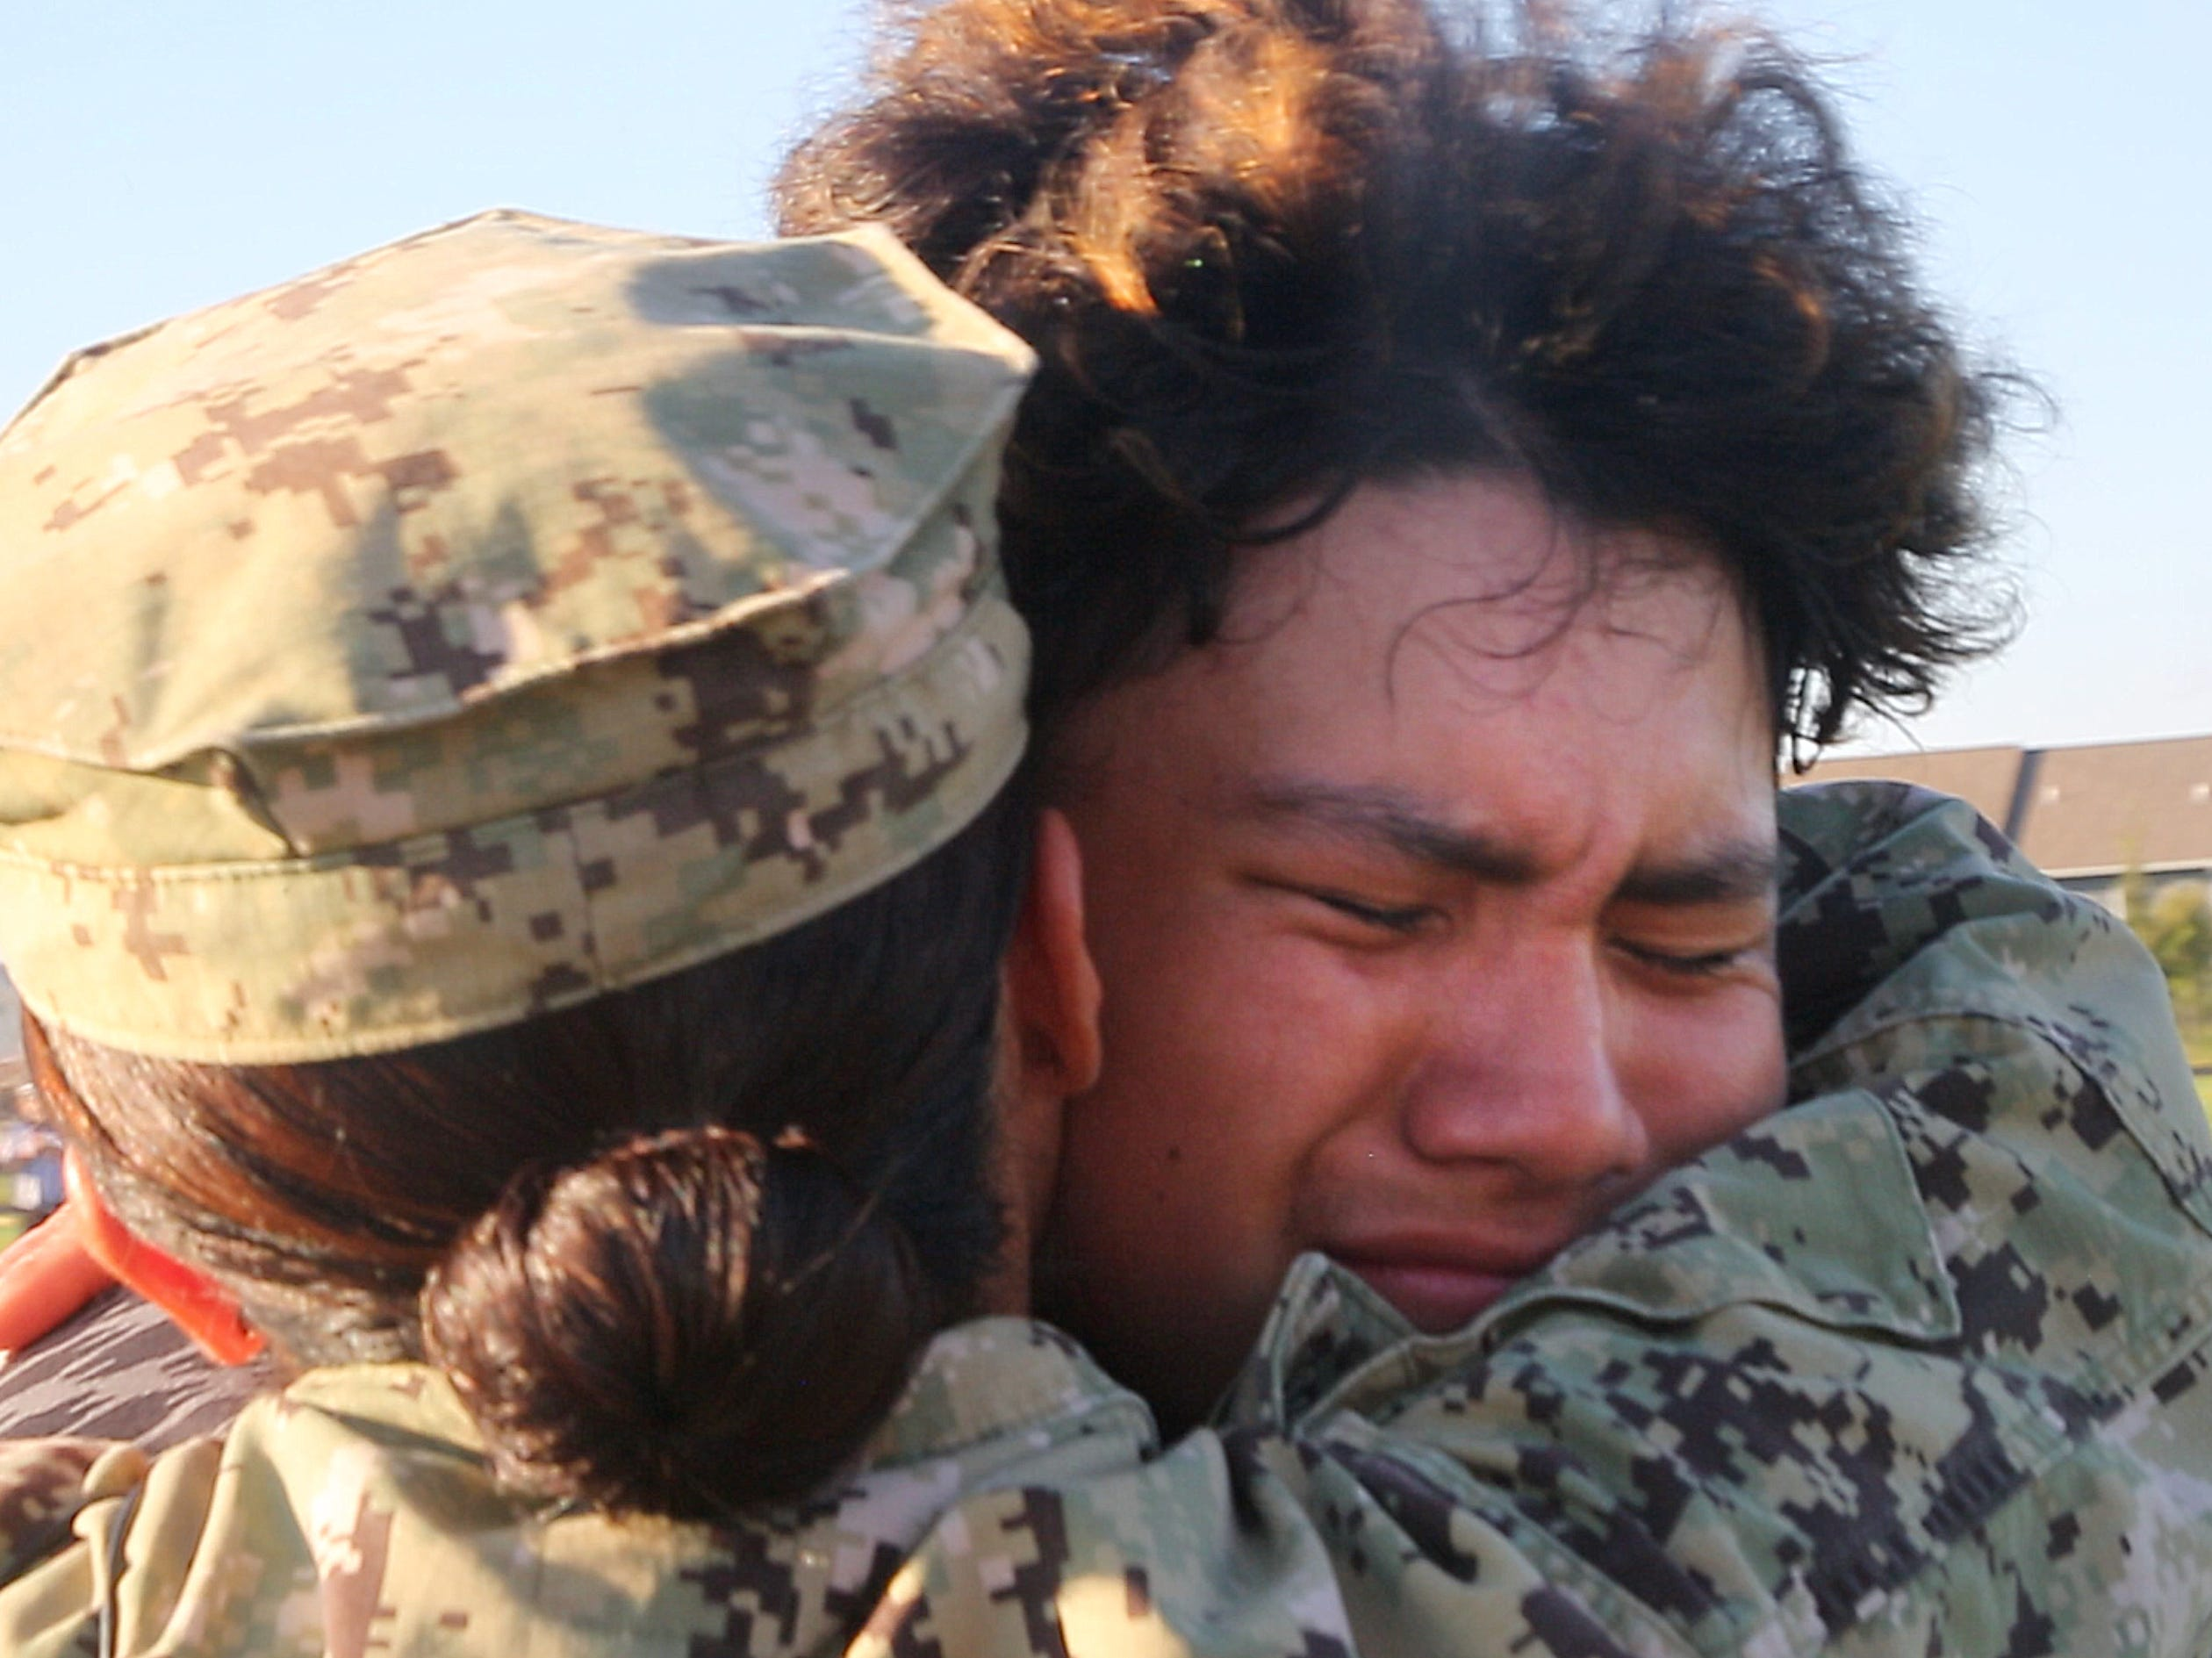 Navy Gunner Mate 1st Class Expeditionary Warfare Specialist Diem Carpenter returns home after 10 months to surprise her son Gabriel Arrendondo, a member of Ankeny Centennial's sophomore football team at his game Sept. 14, 2018.